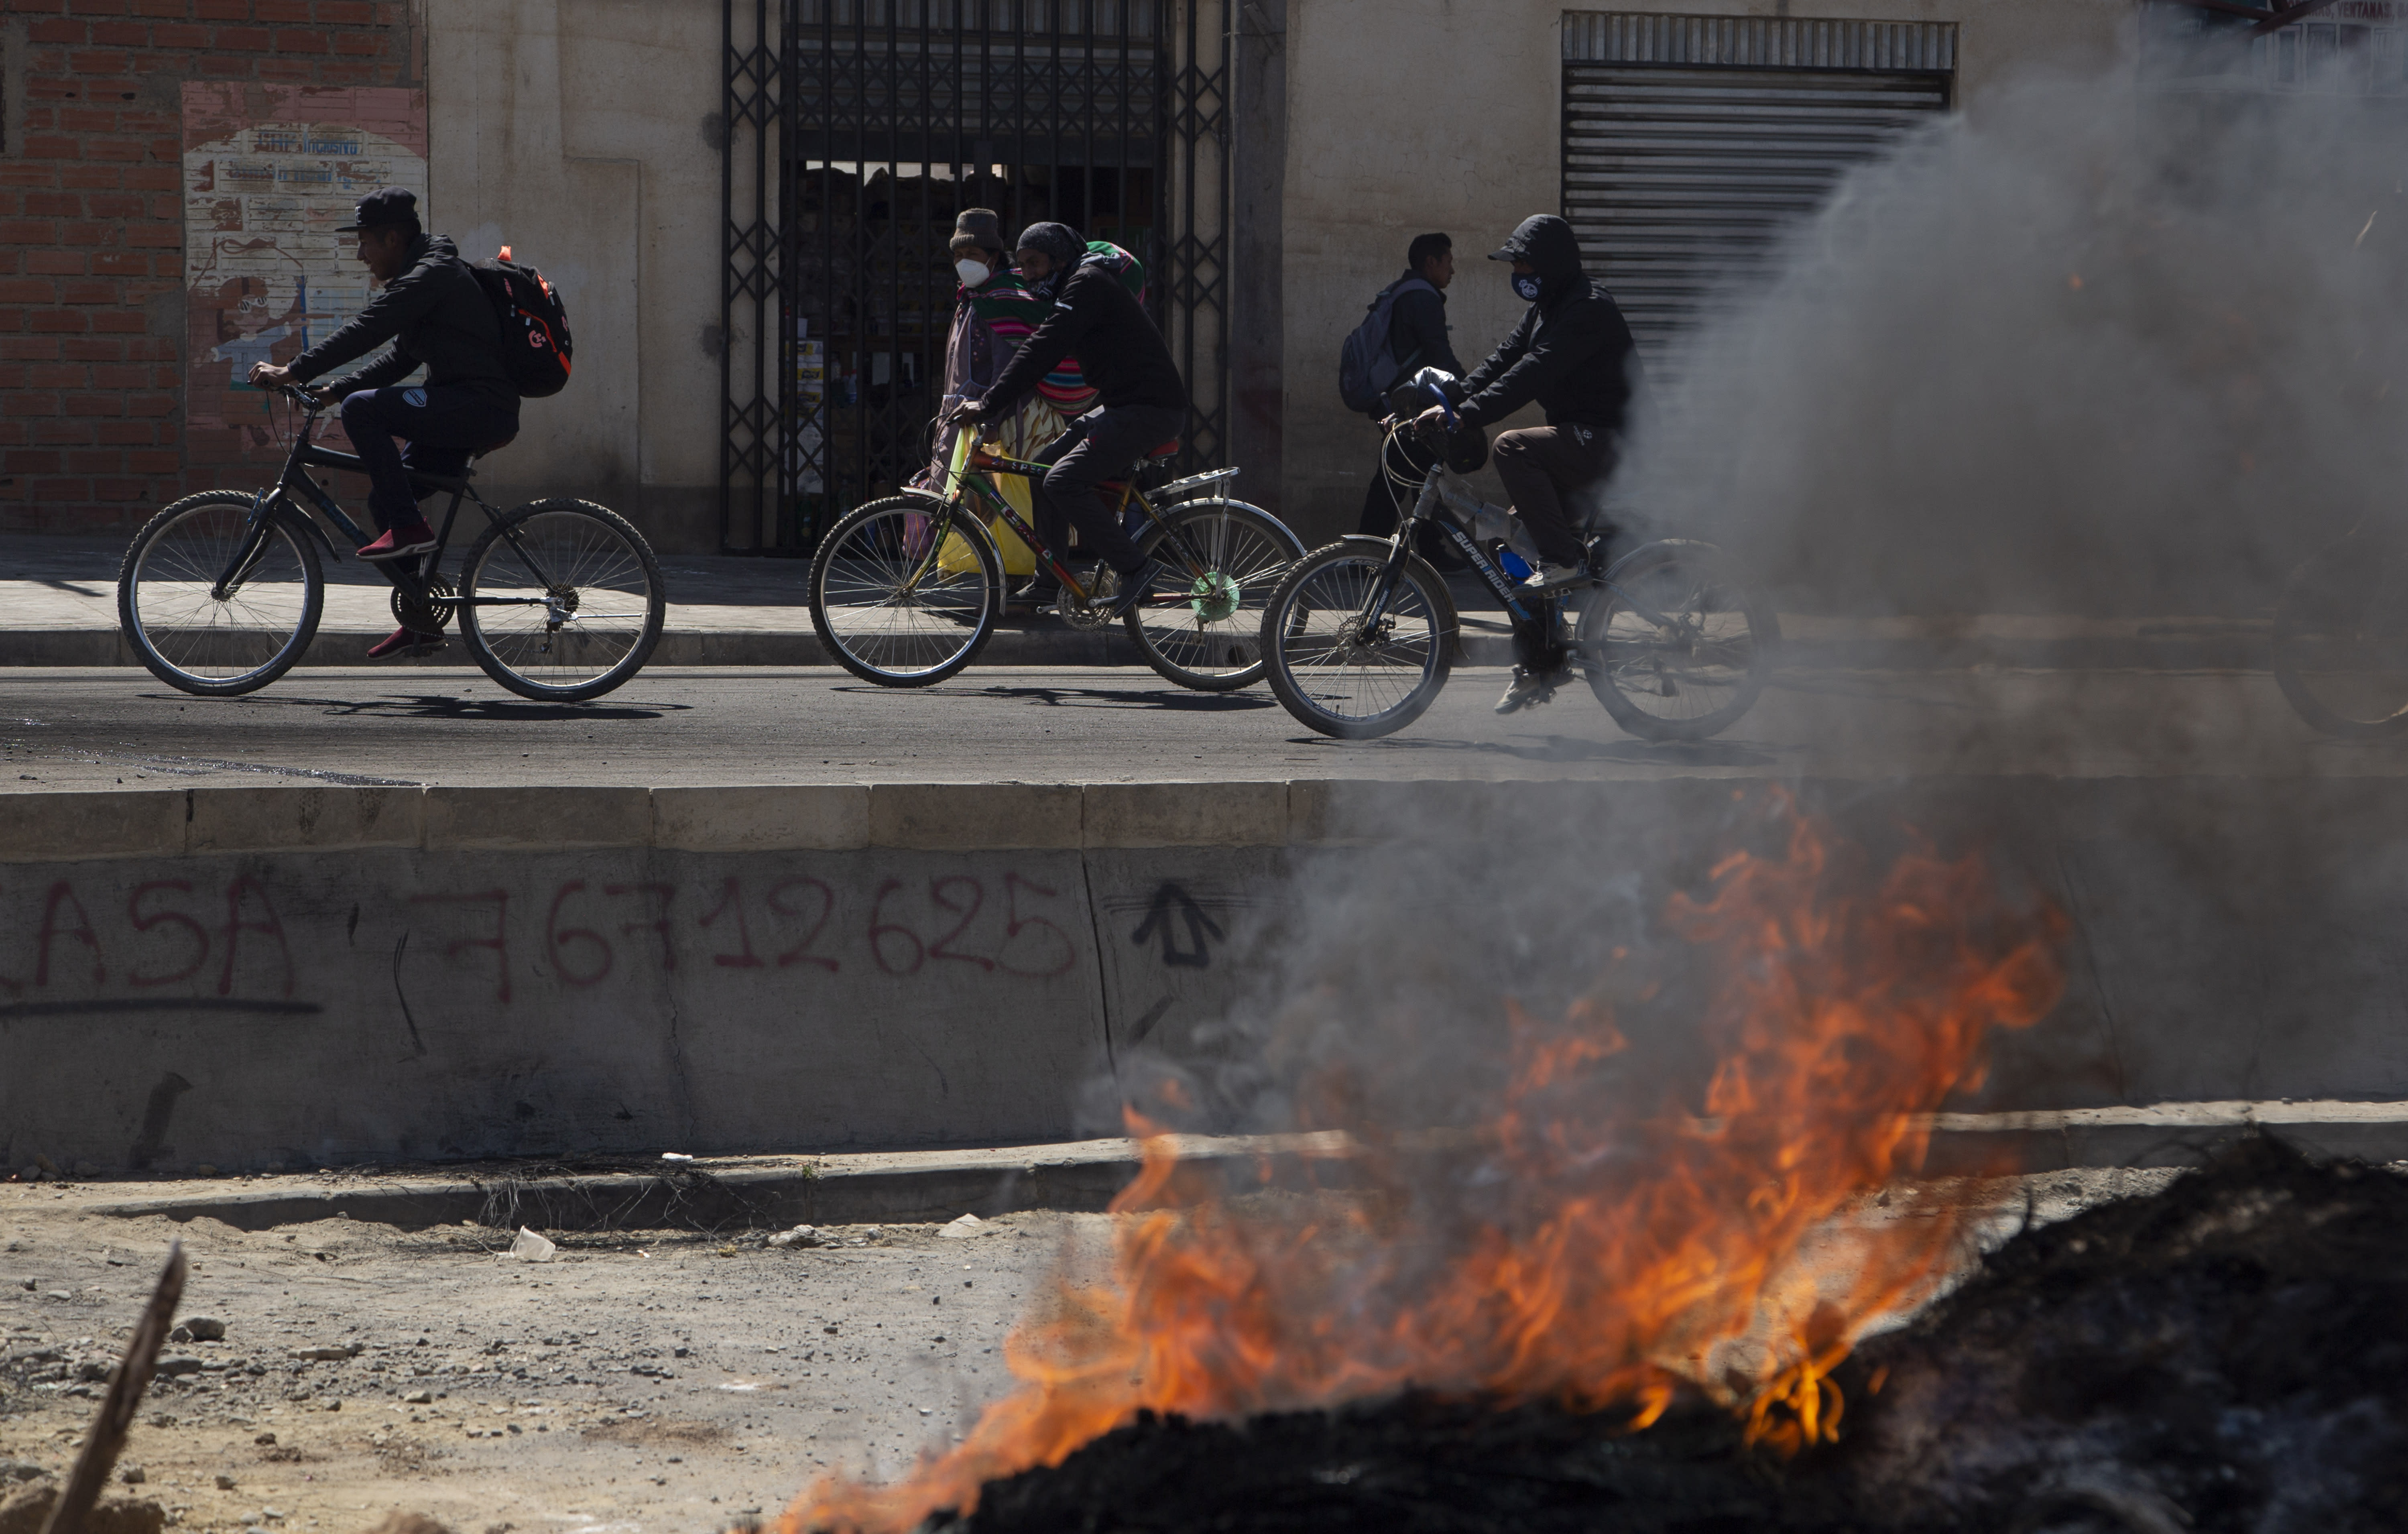 Commuters on bicycles ride past a barricade set up by protesters against the postponement of the presidential election in El Alto, Bolivia, Monday, Aug. 10, 2020. Citing the ongoing new coronavirus pandemic, the nation's highest electoral authority delayed presidential elections from Sept. 6 to Oct. 18, the third time the vote has been delayed. (AP Photo/Juan Karita)